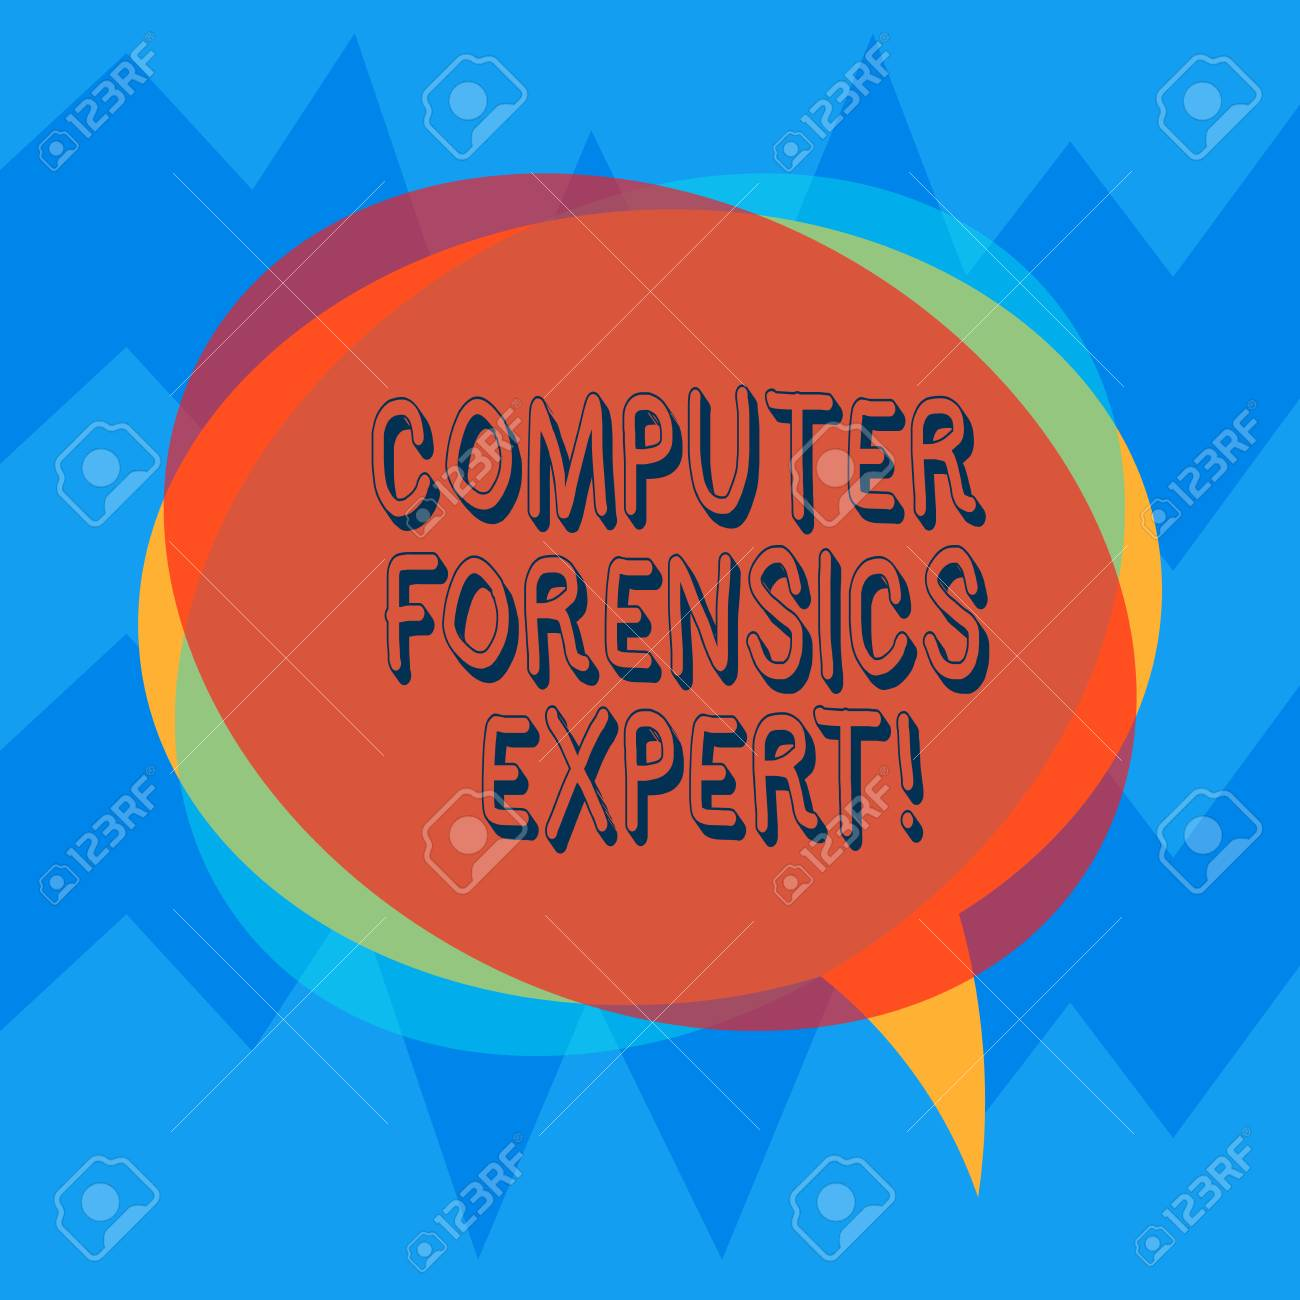 Handwriting Text Computer Forensics Expert Concept Meaning Harvesting Stock Photo Picture And Royalty Free Image Image 114483965